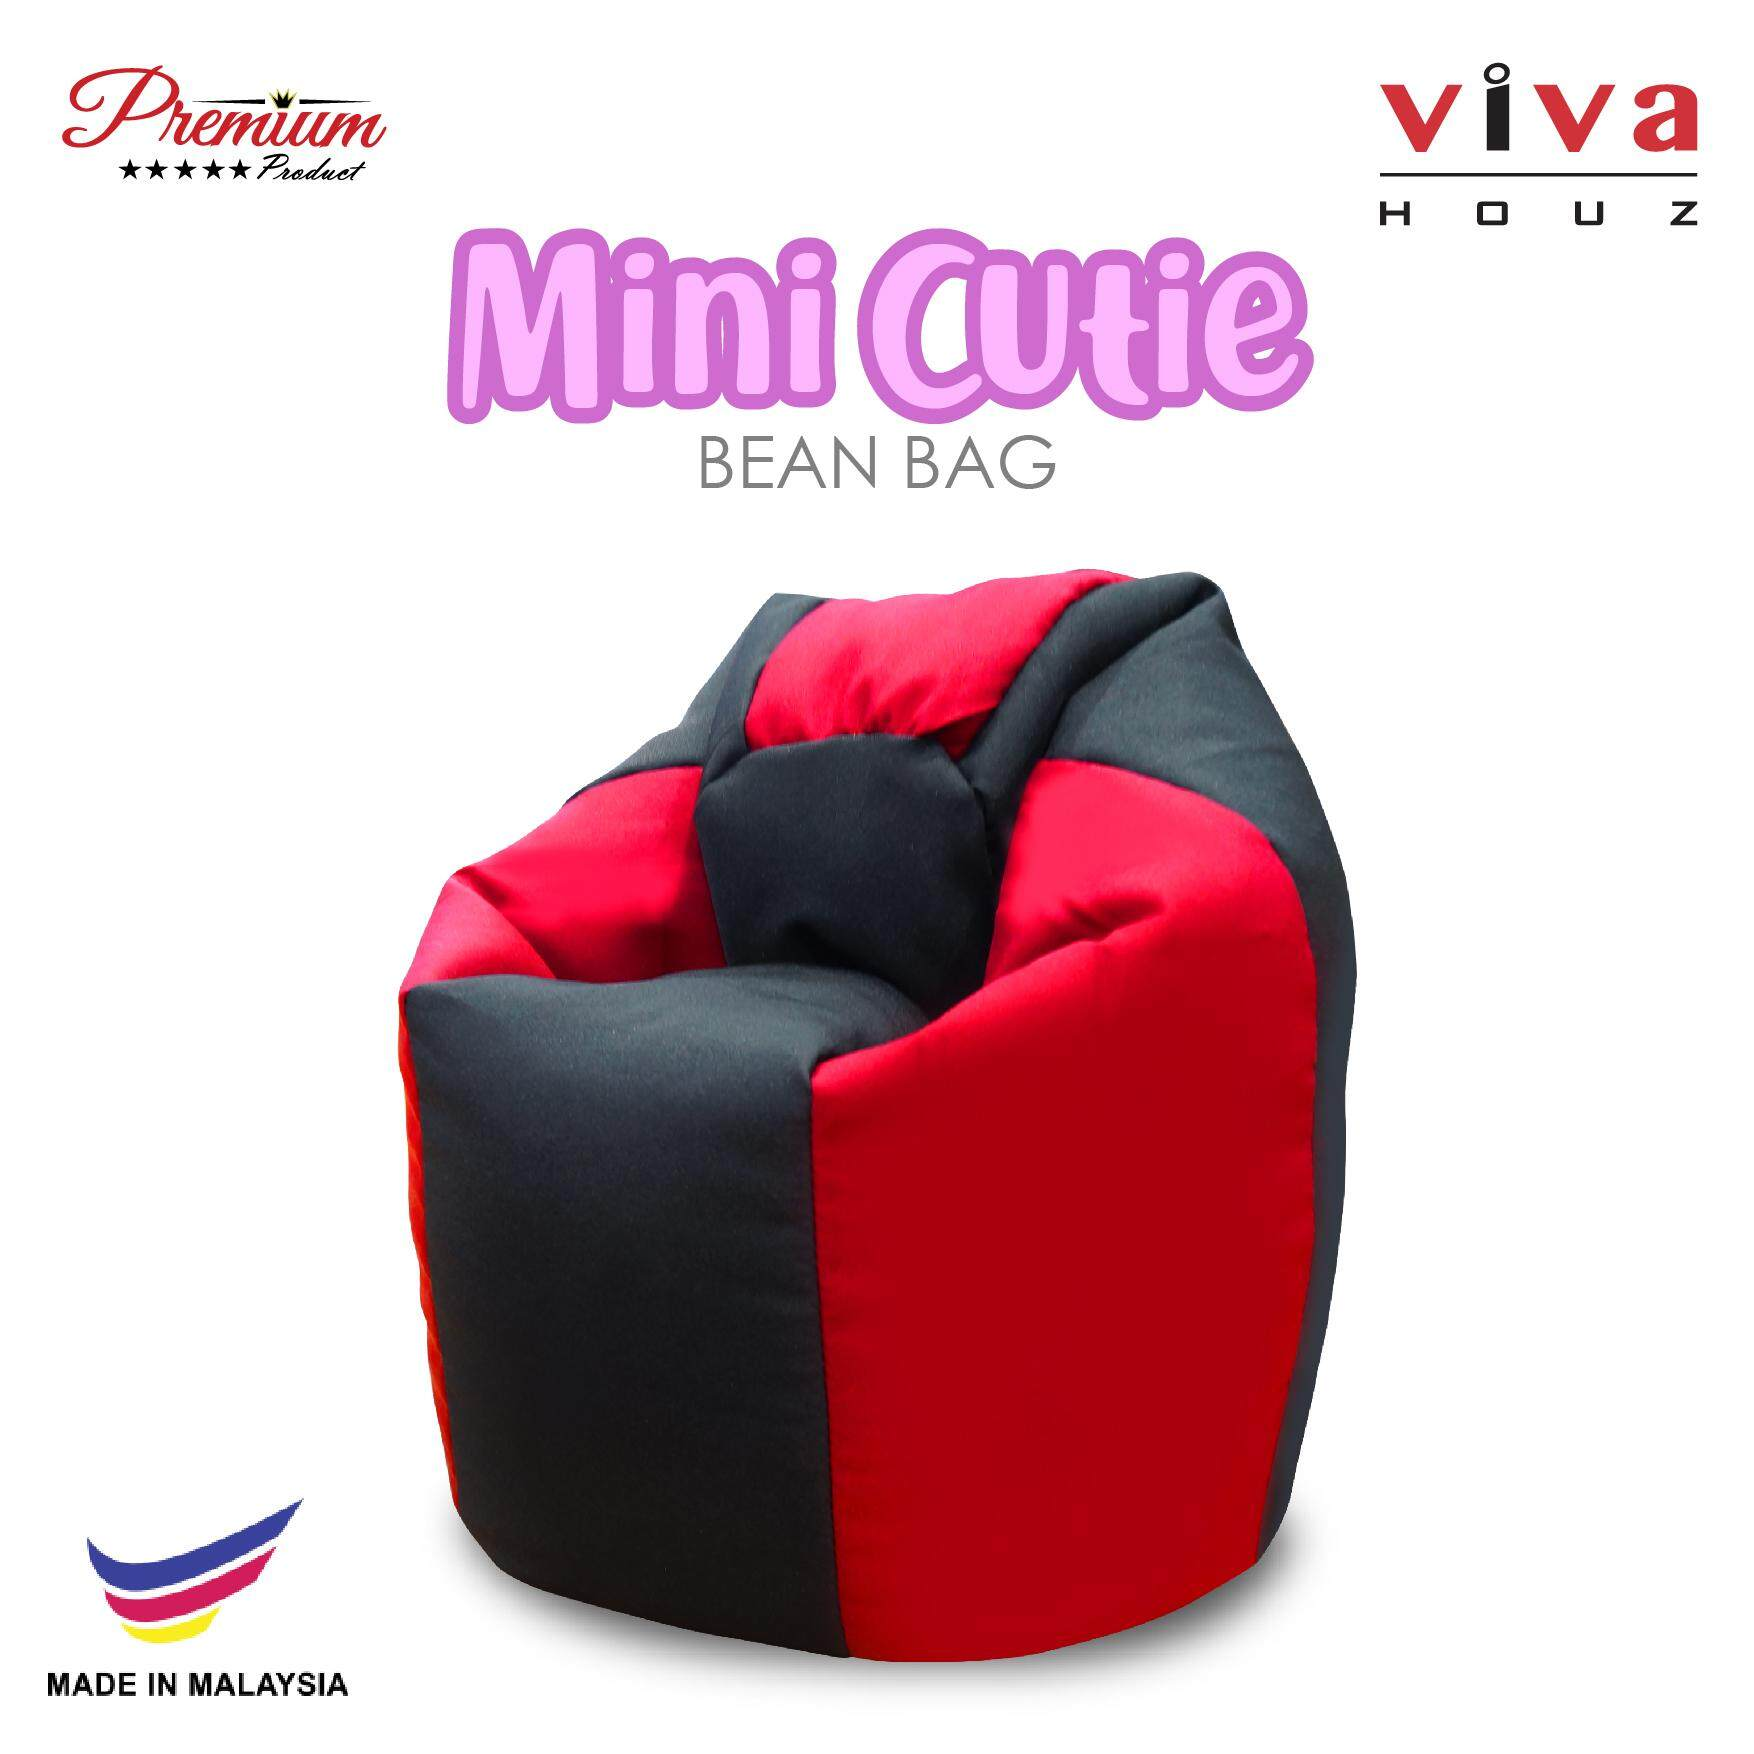 Mini Bean Bag Chair Viva Houz Cutie Mini Bean Bag Pouffe Sofa Chair Red Black Made In Malaysia